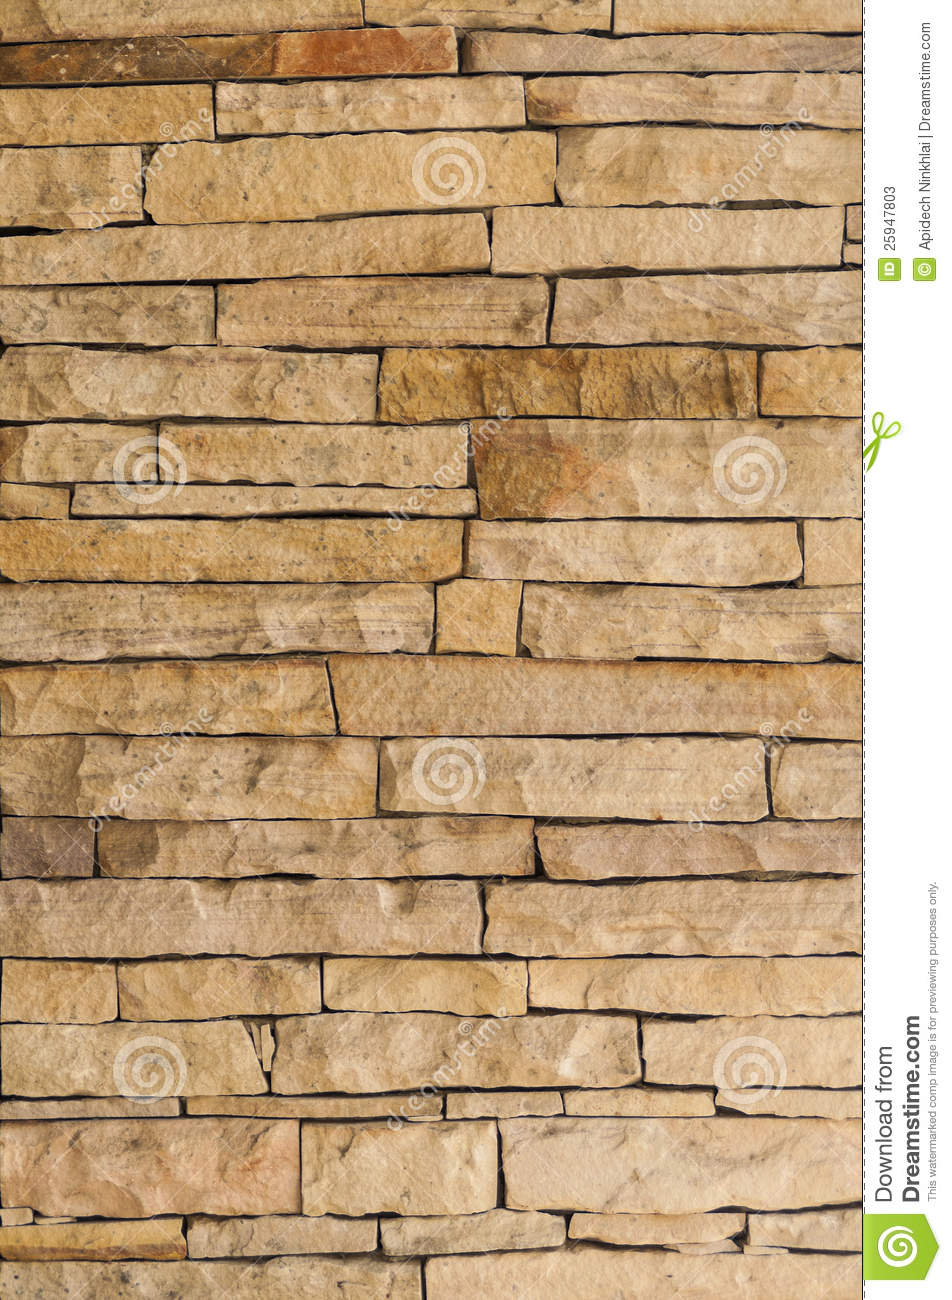 how to build a flagstone wall